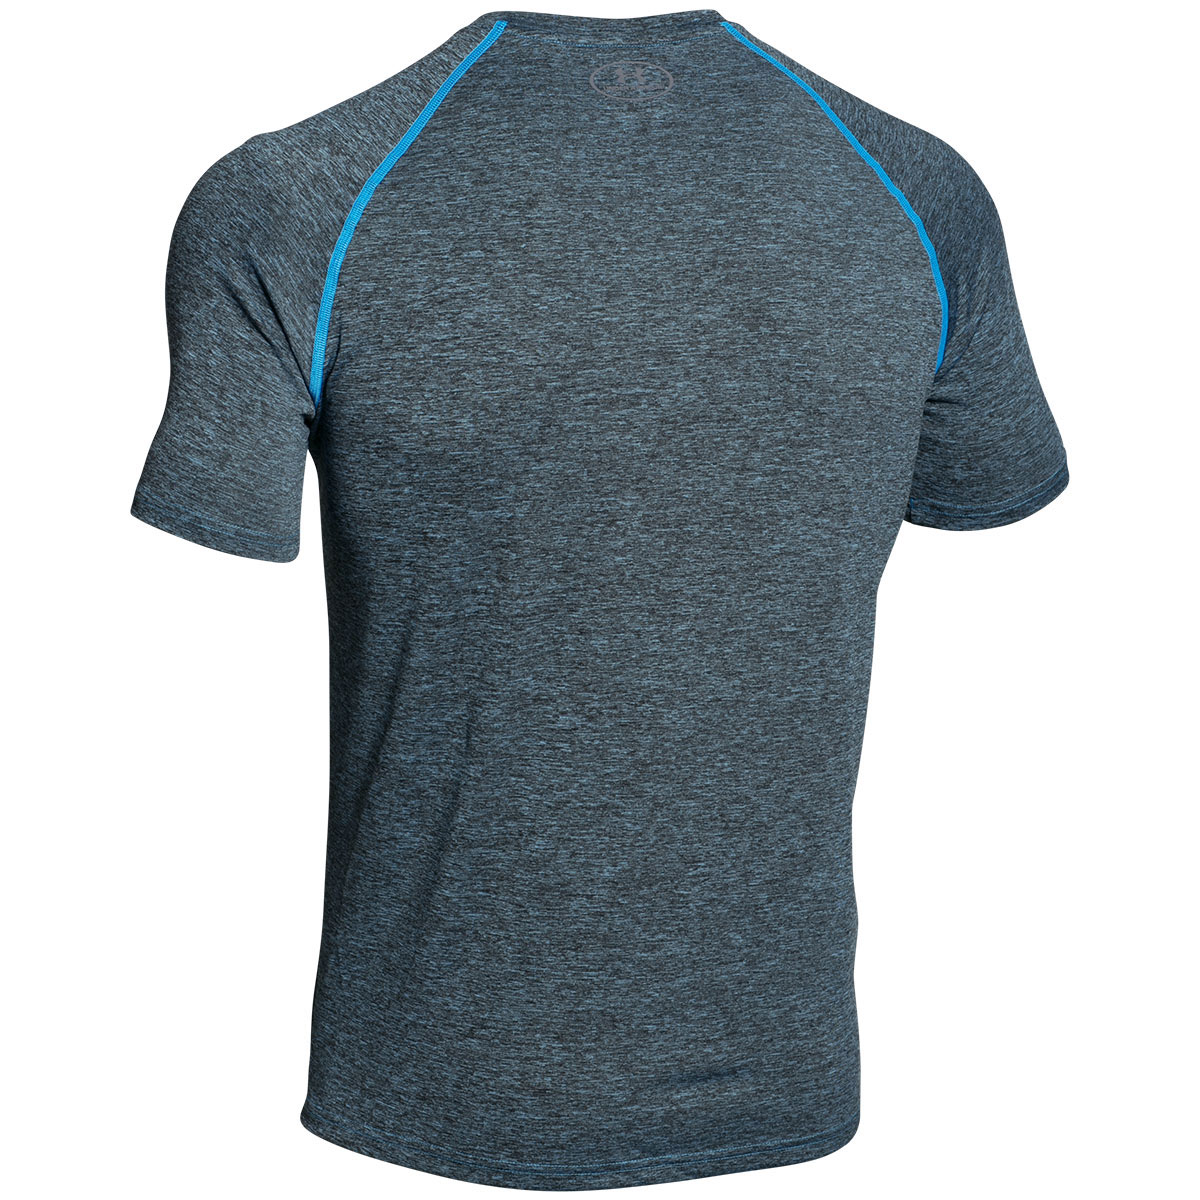 Under-Armour-Mens-UA-Tech-SS-T-Shirt-HeatGear-Training-31-OFF-RRP thumbnail 59